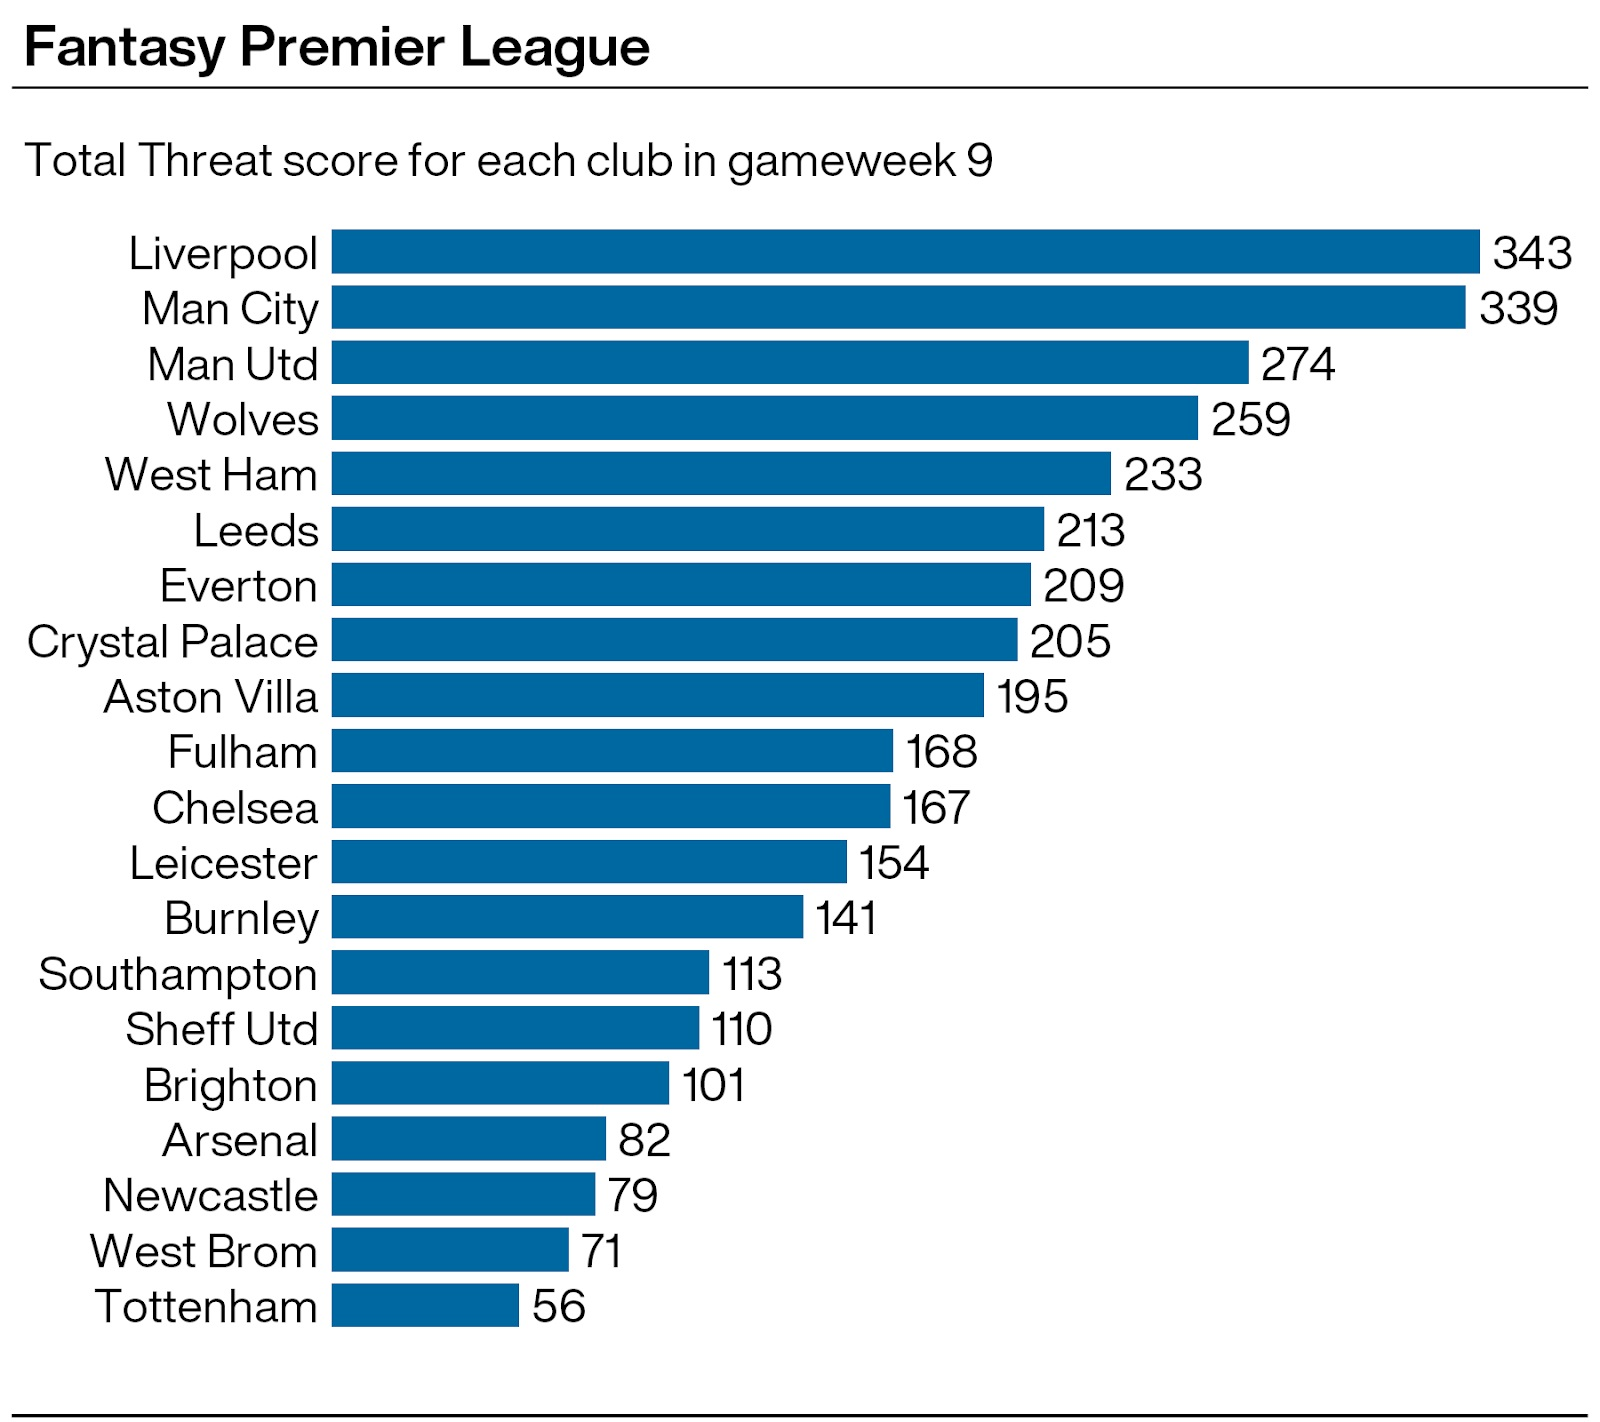 A graphic showing Premier League teams' total Threat scores in gameweek nine